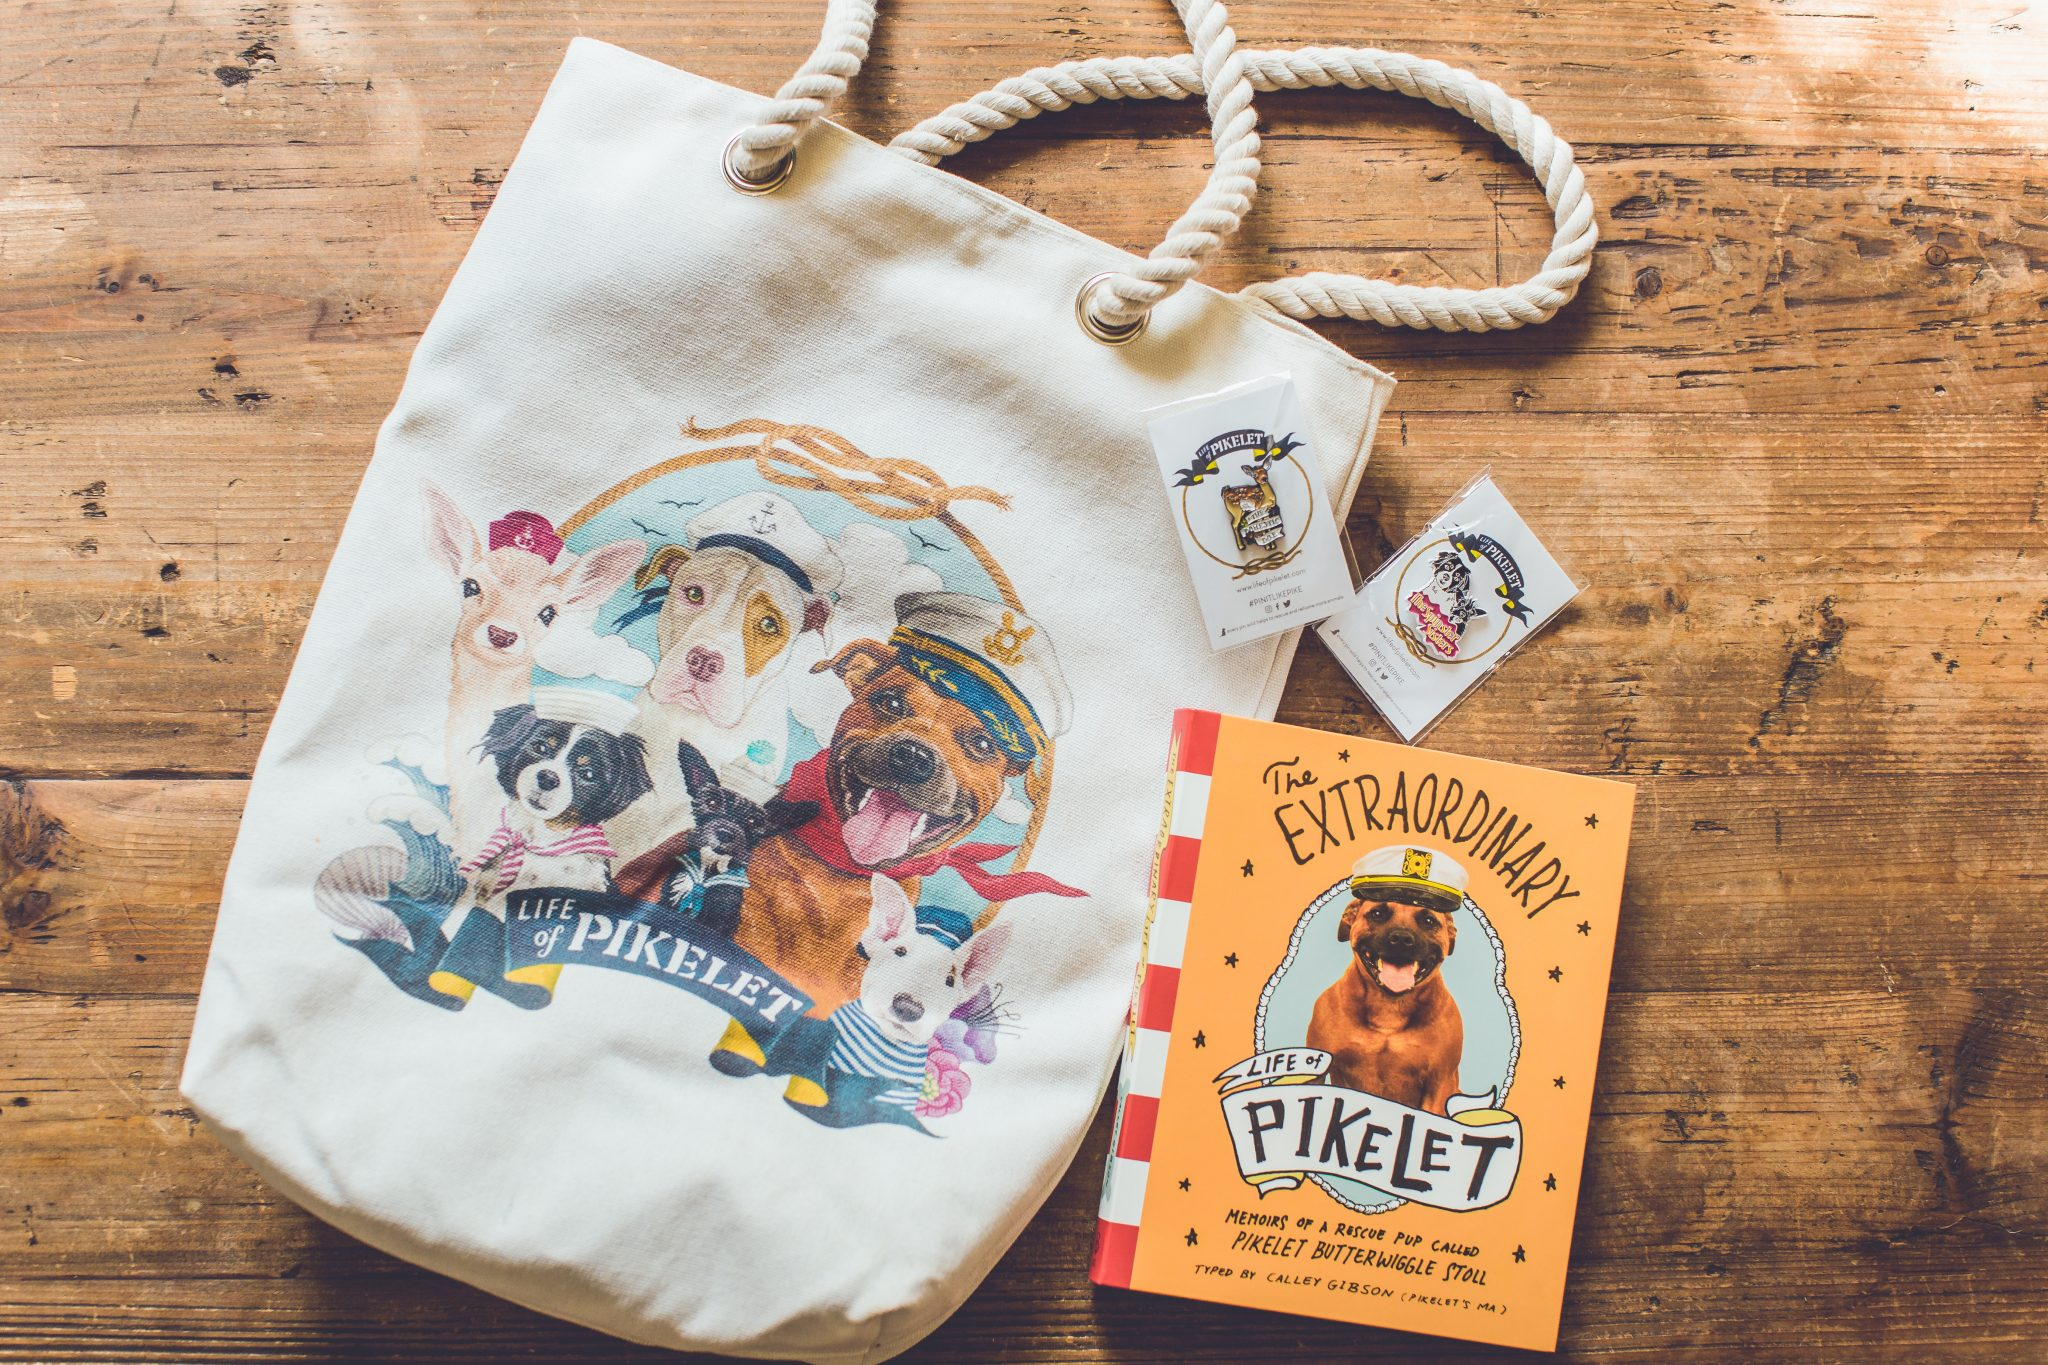 Life Of Pikelet – 'Support A Sister' Gift Pack